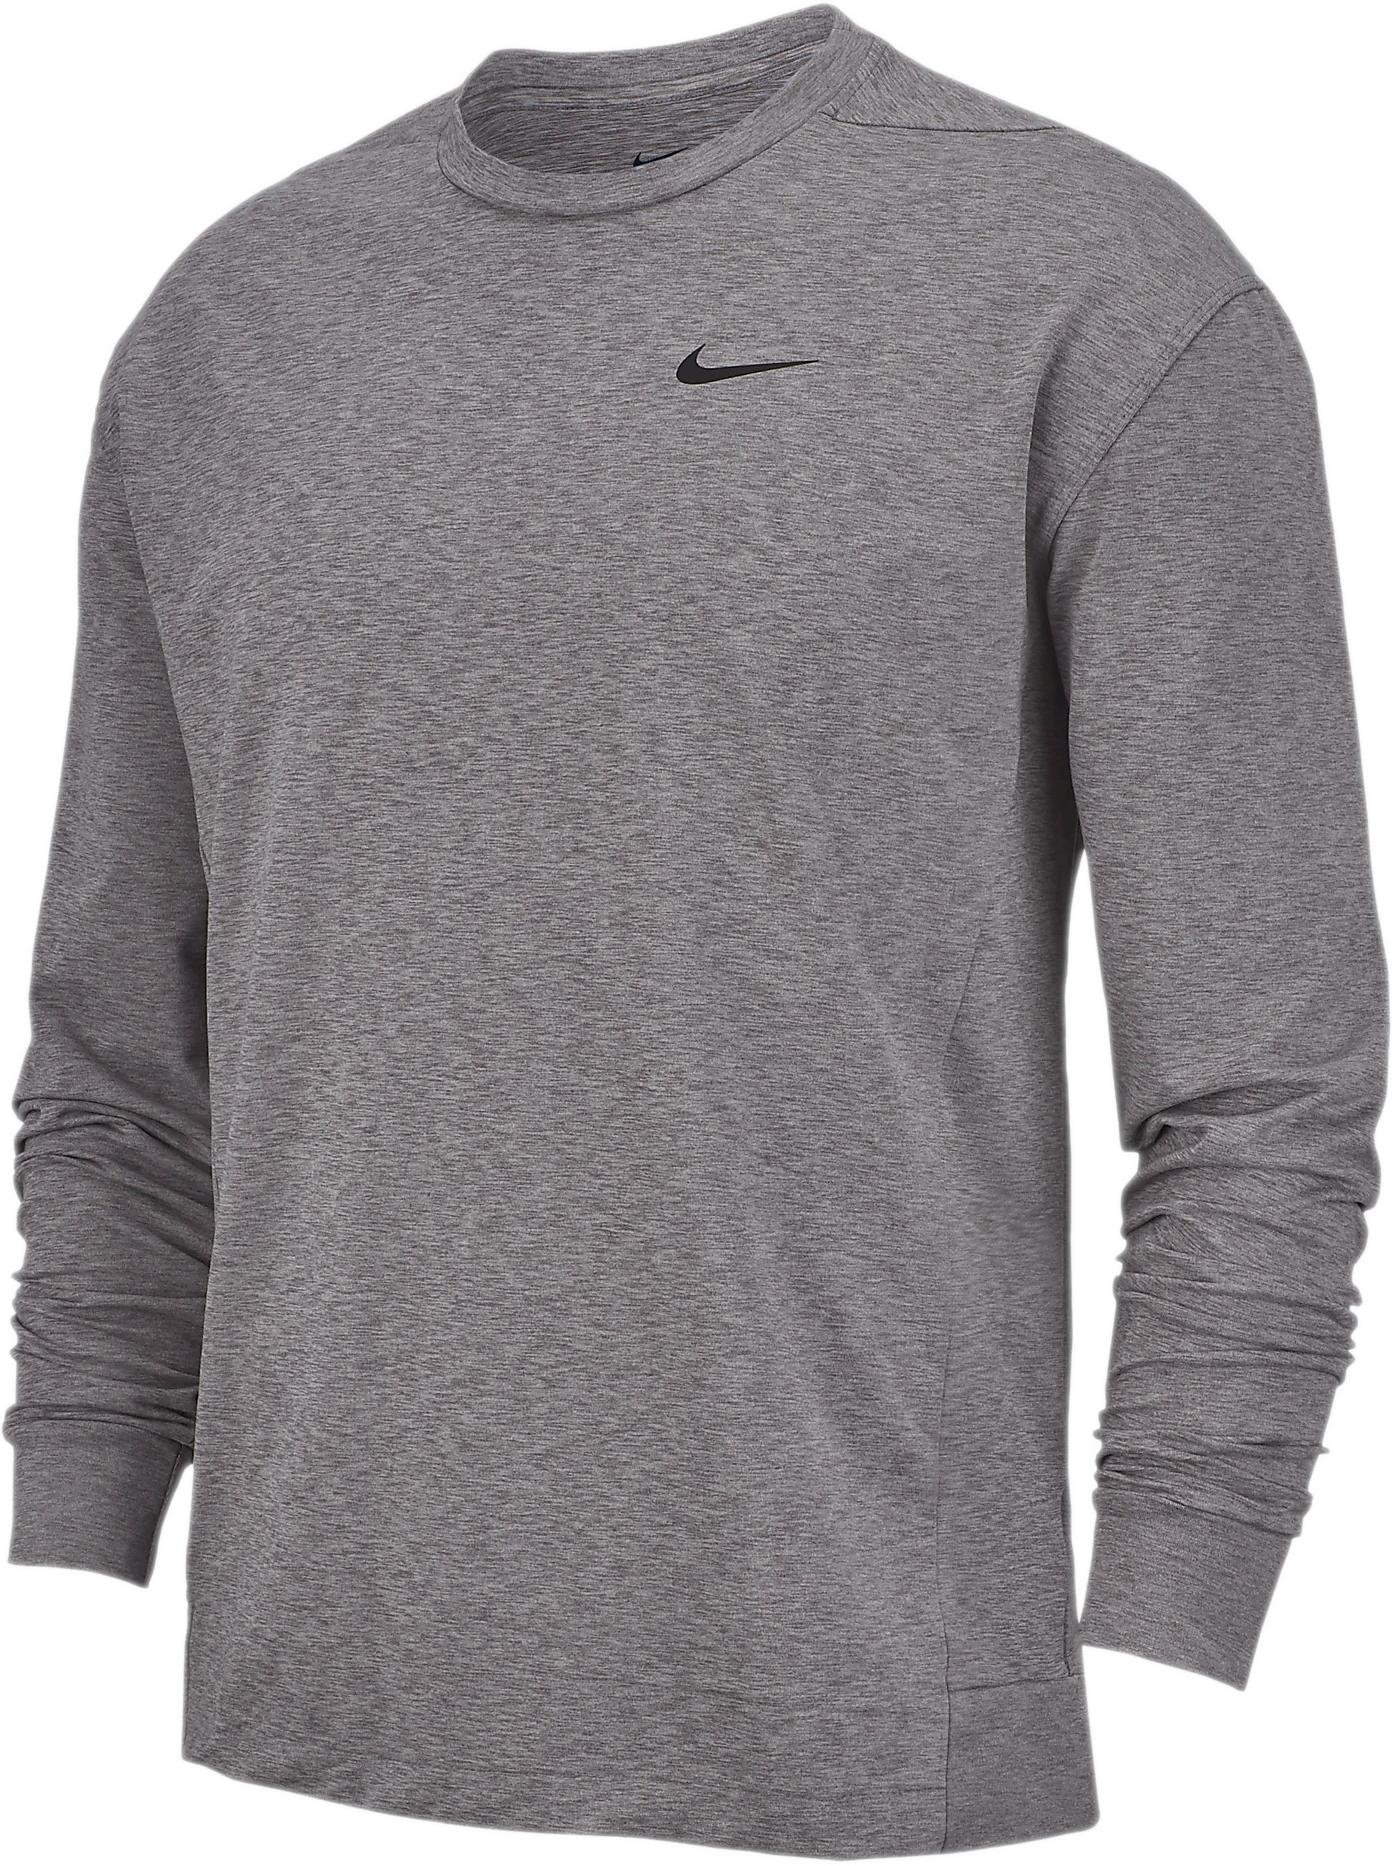 Long sleeve T shirt Nike M NK DRY TOP LS CREW HPRDR LT